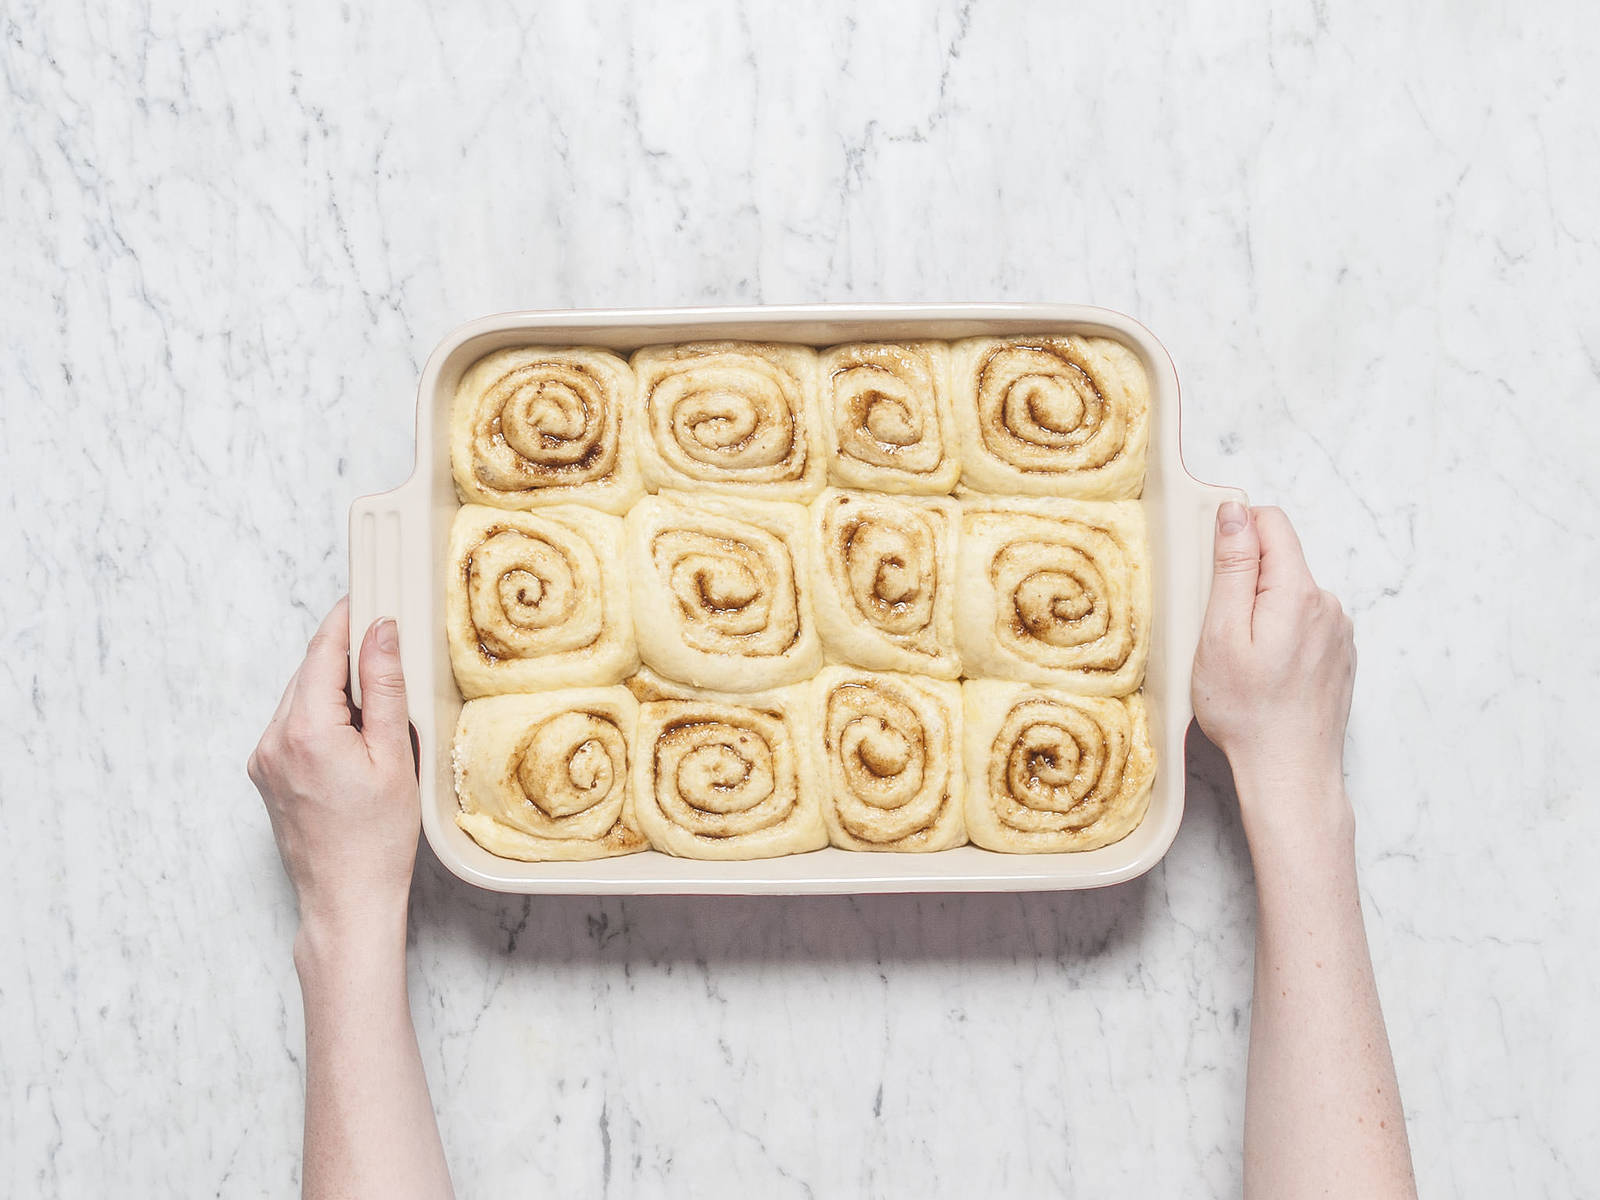 In the meantime, preheat oven to 170°C/350°F. Bake cinnamon buns for approx. 25 min., or until golden brown. Remove from oven and let cool for approx. 10 min.